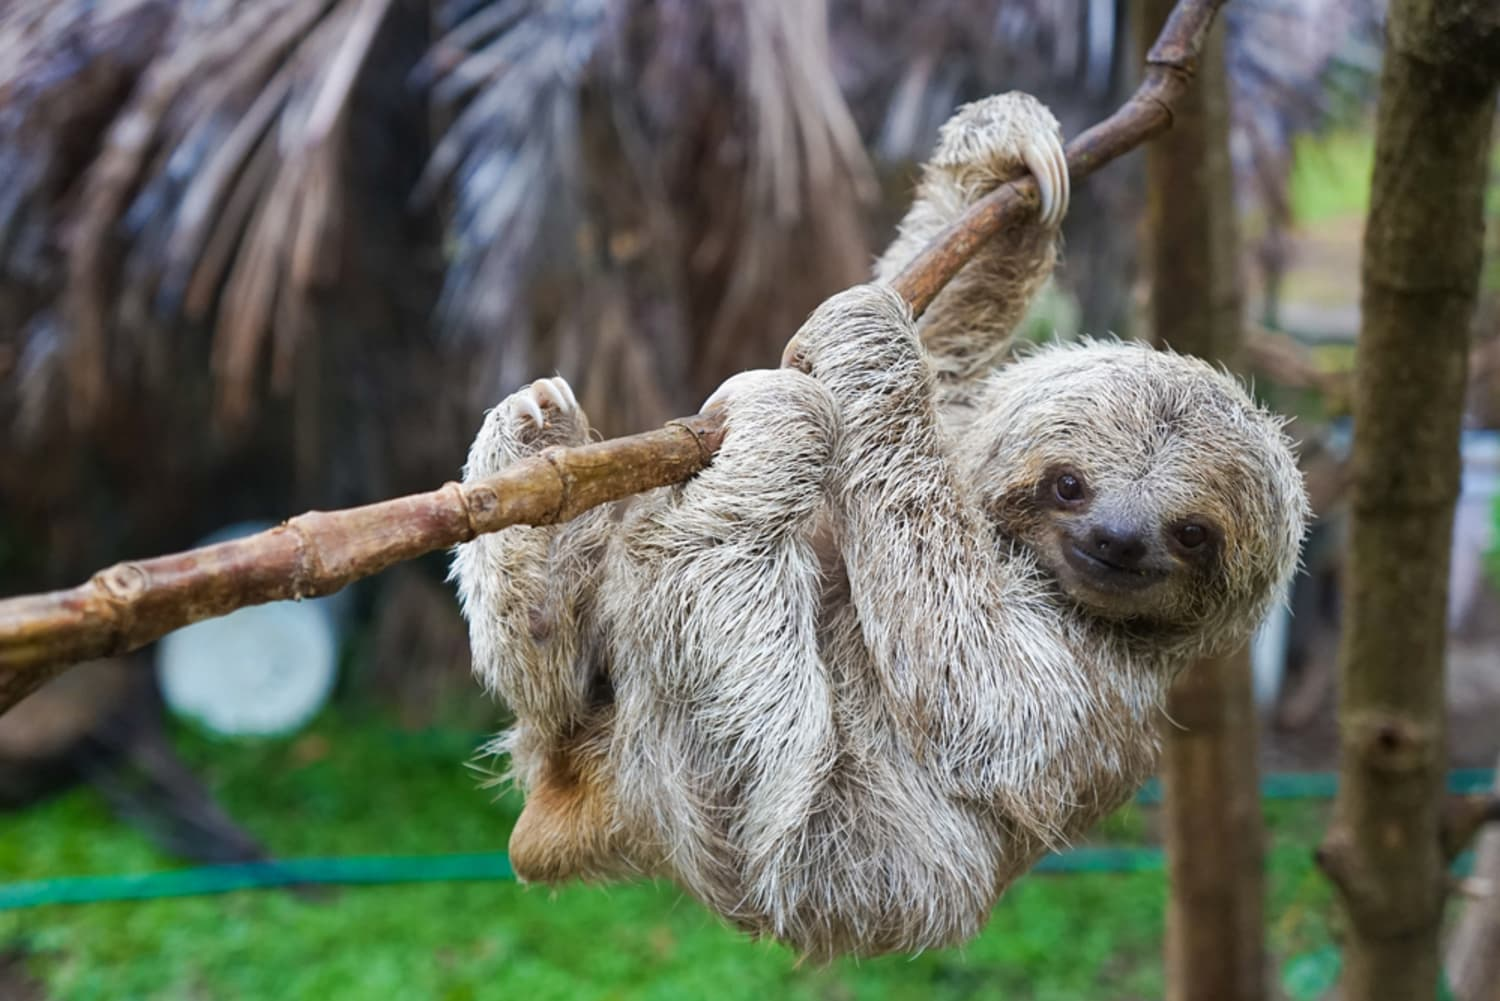 This Sloth Home Decor Collection Will Inspire You to Take a Long Nap